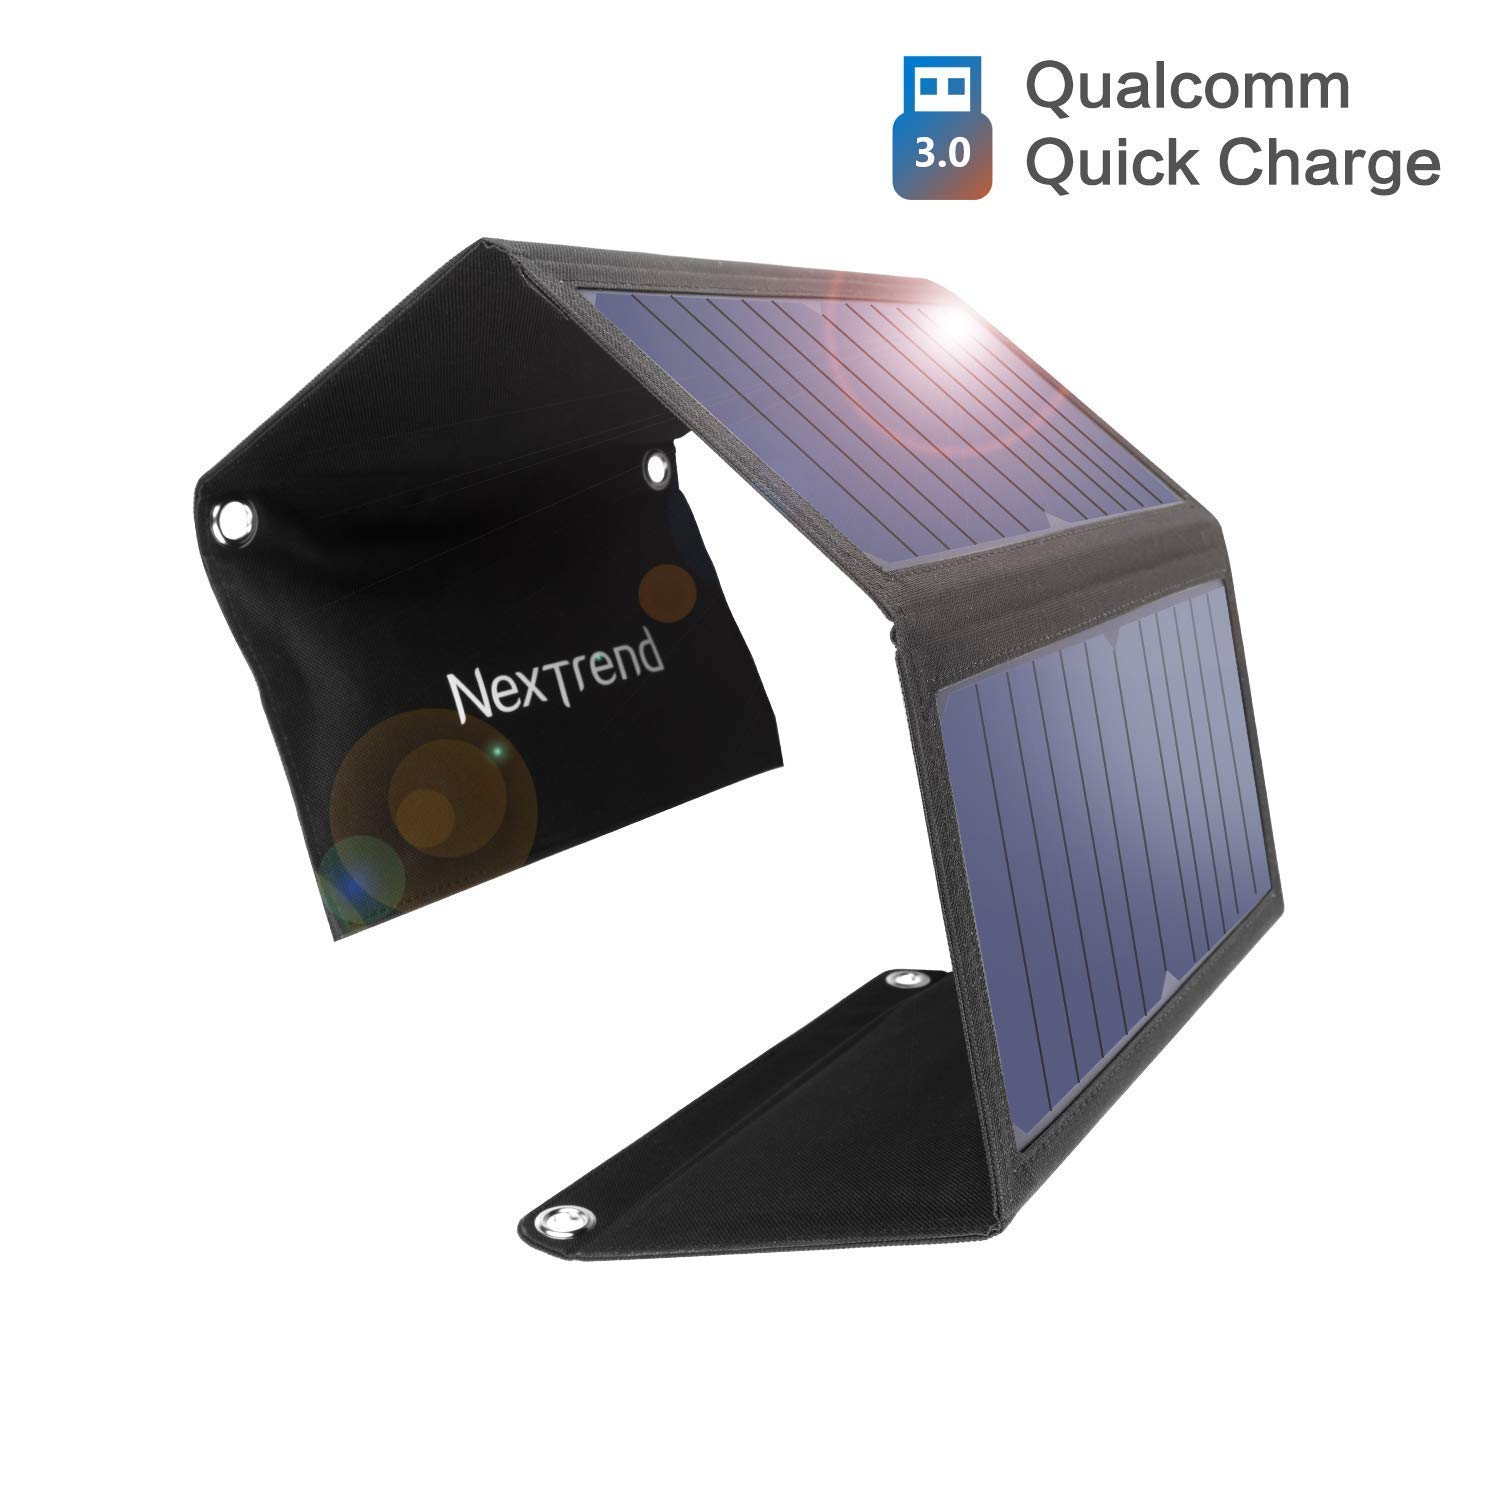 28w Solar Portable Charger, NexTrend 3 Foldable Solar Panels USB 3.0 Solar Charger for iPhone 7 / 6s / Plus, iPad Pro/Air 2 / Mini, Galaxy S7 / S6 / Edge/Plus, Note 5/4, LG, Nexus, HTC and More